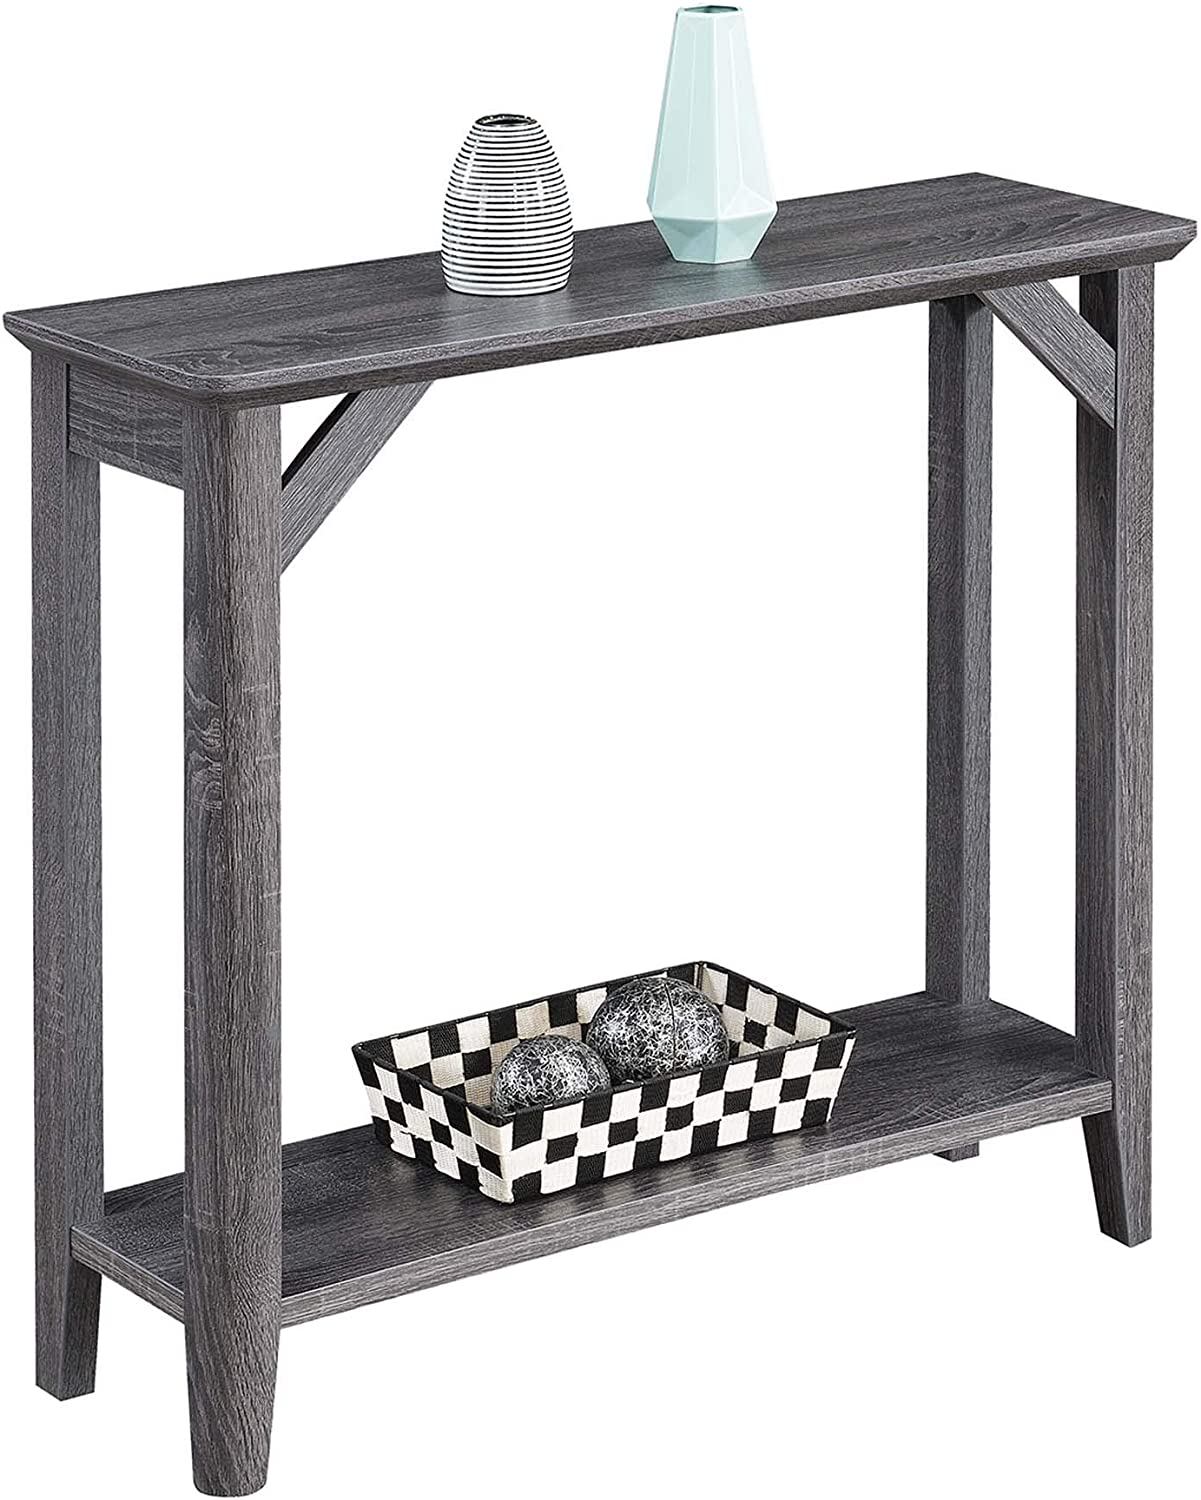 Convenience Concepts Winston Hall Table, Weathered Gray